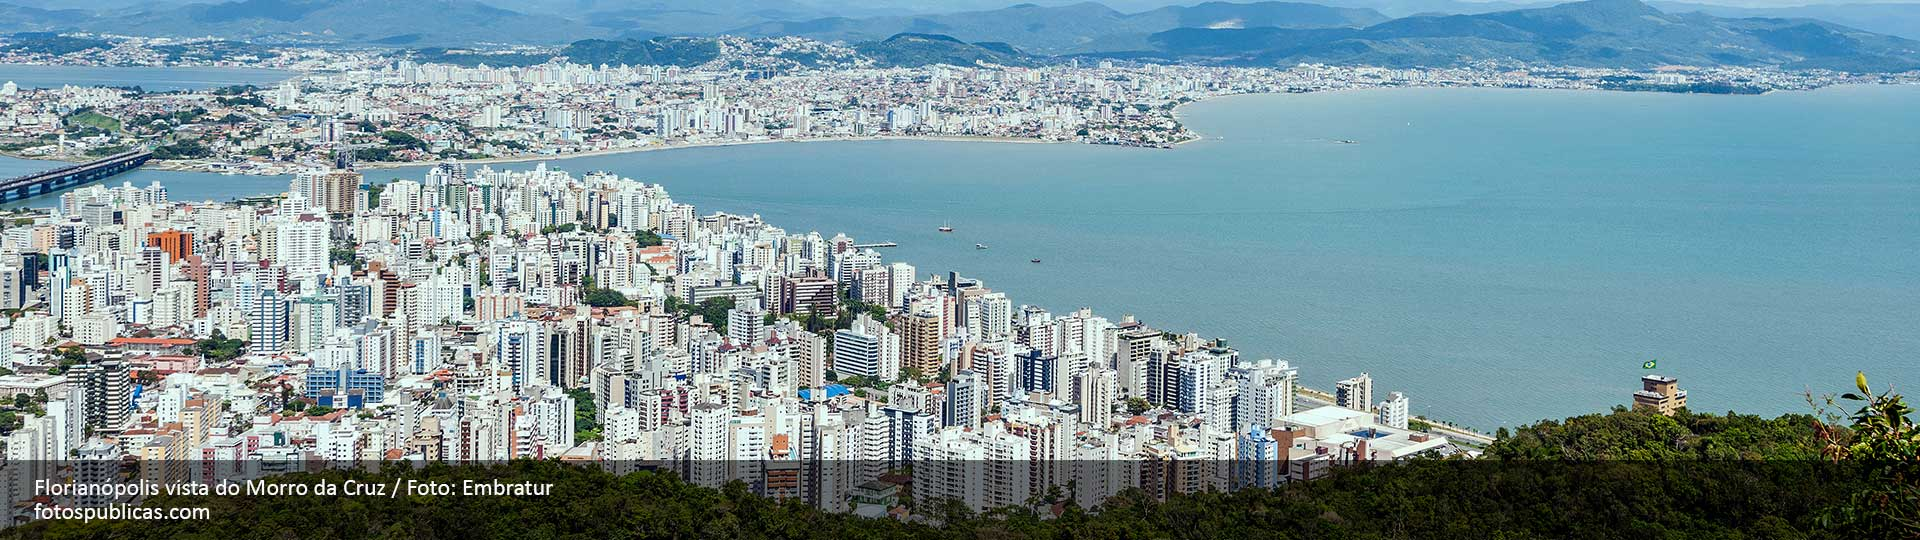 vista-do-morro-da-cruz-florianopolis-sc